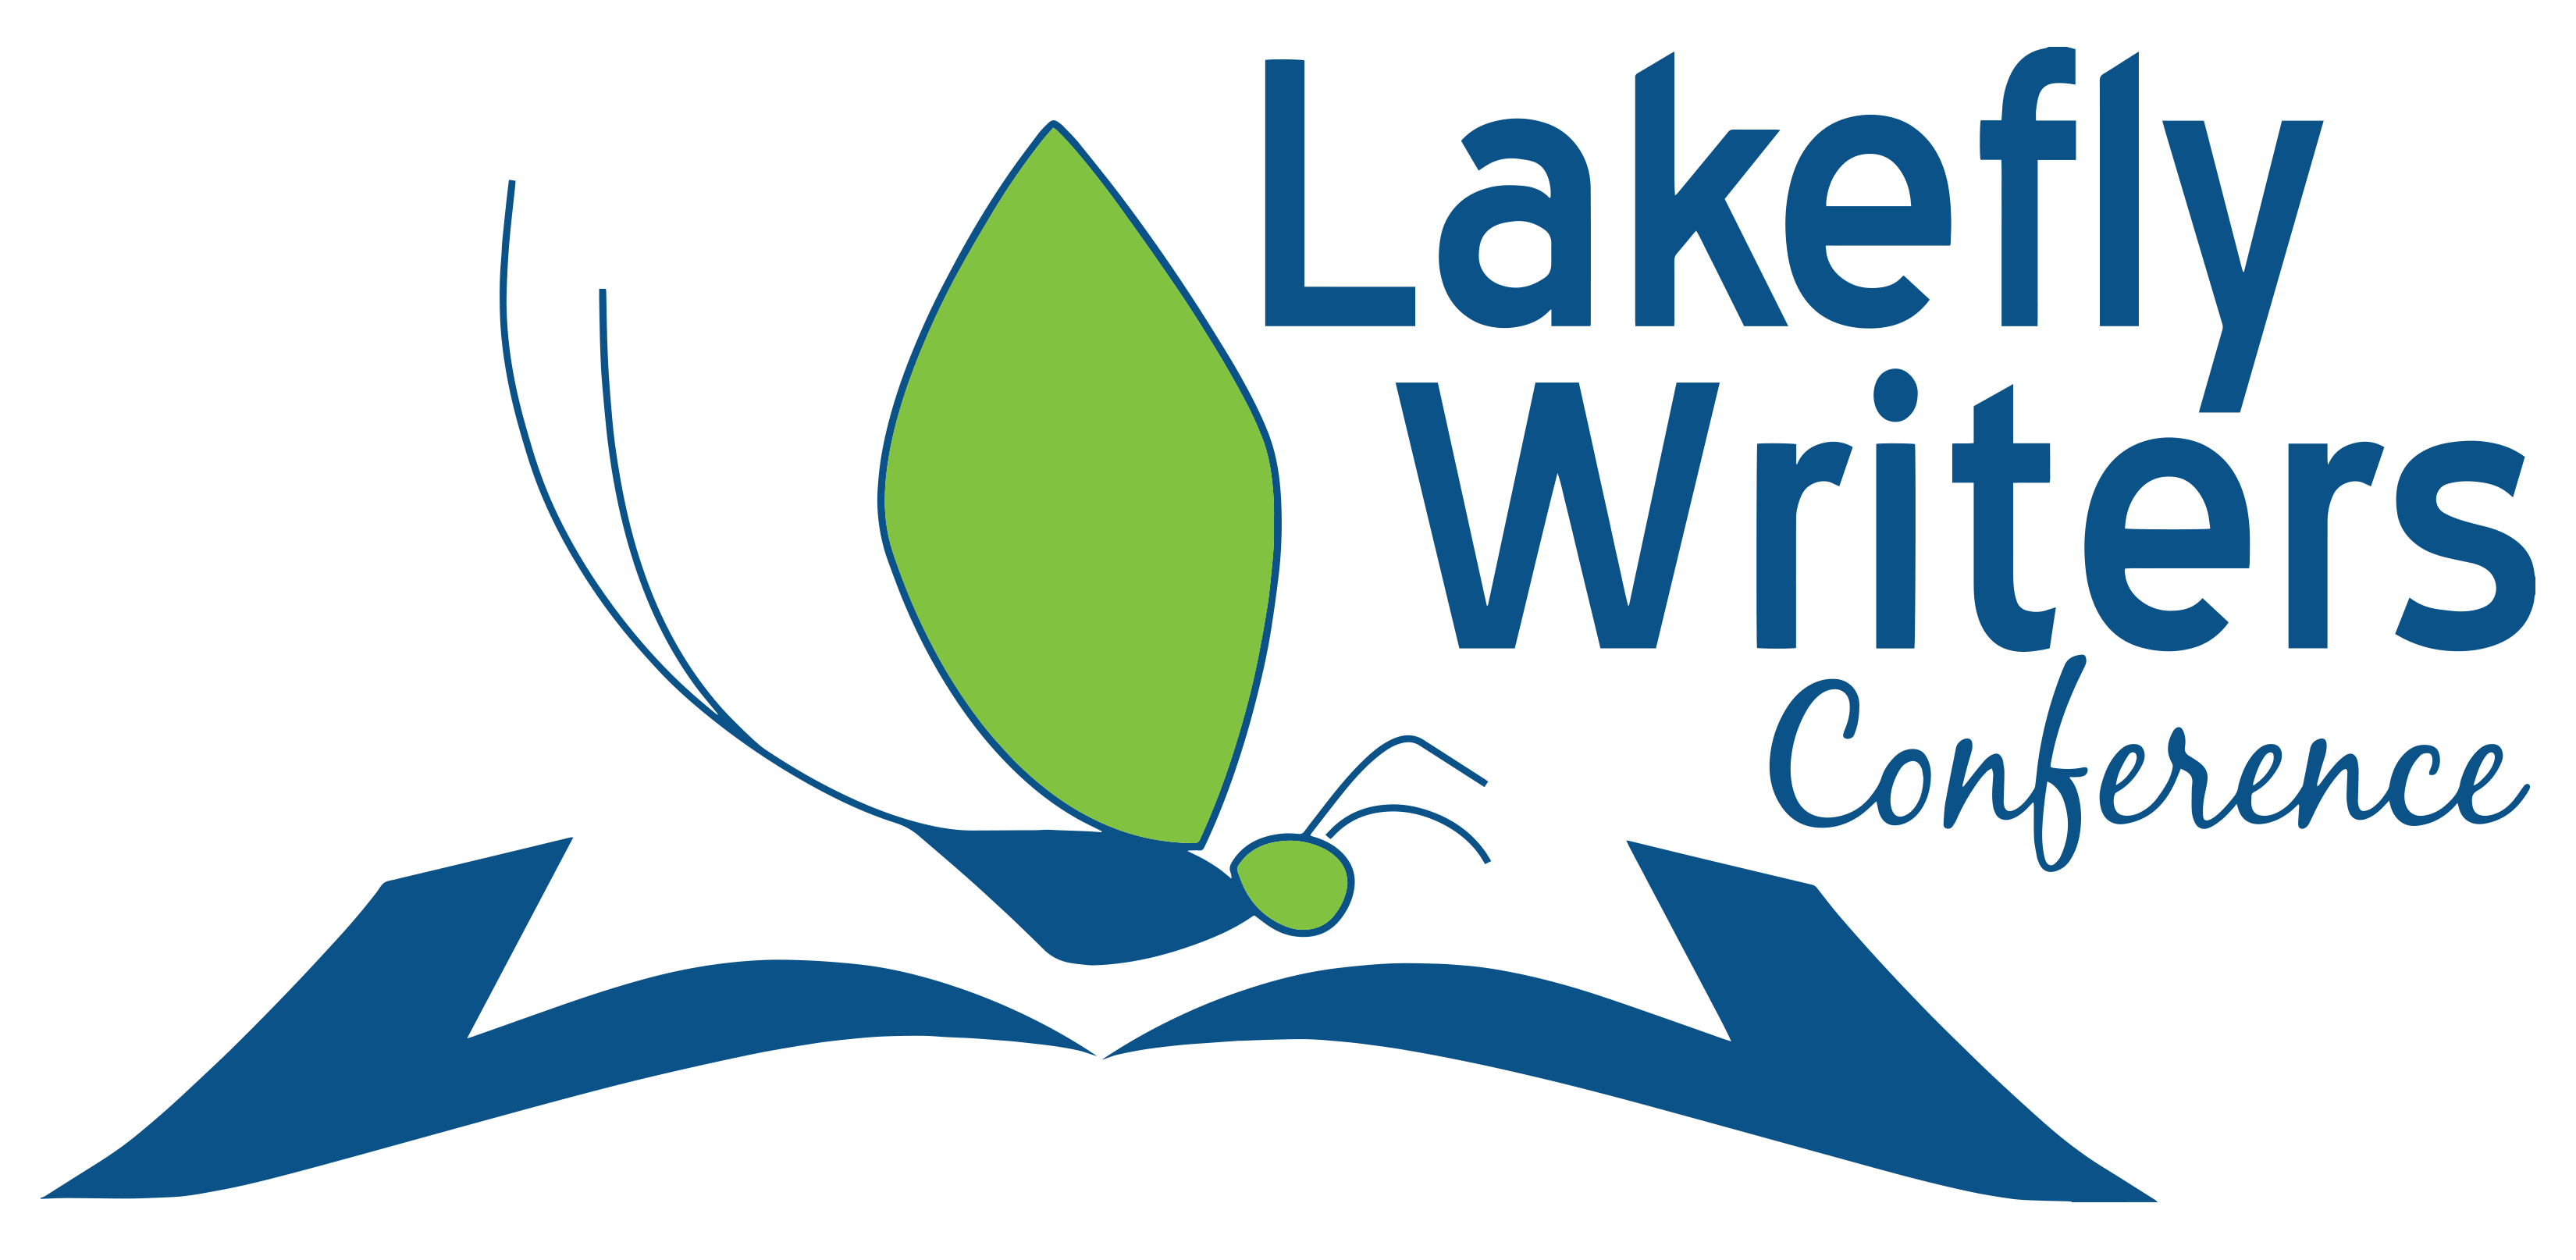 clip black and white Writer clipart business writing. Lakefly literary conference we